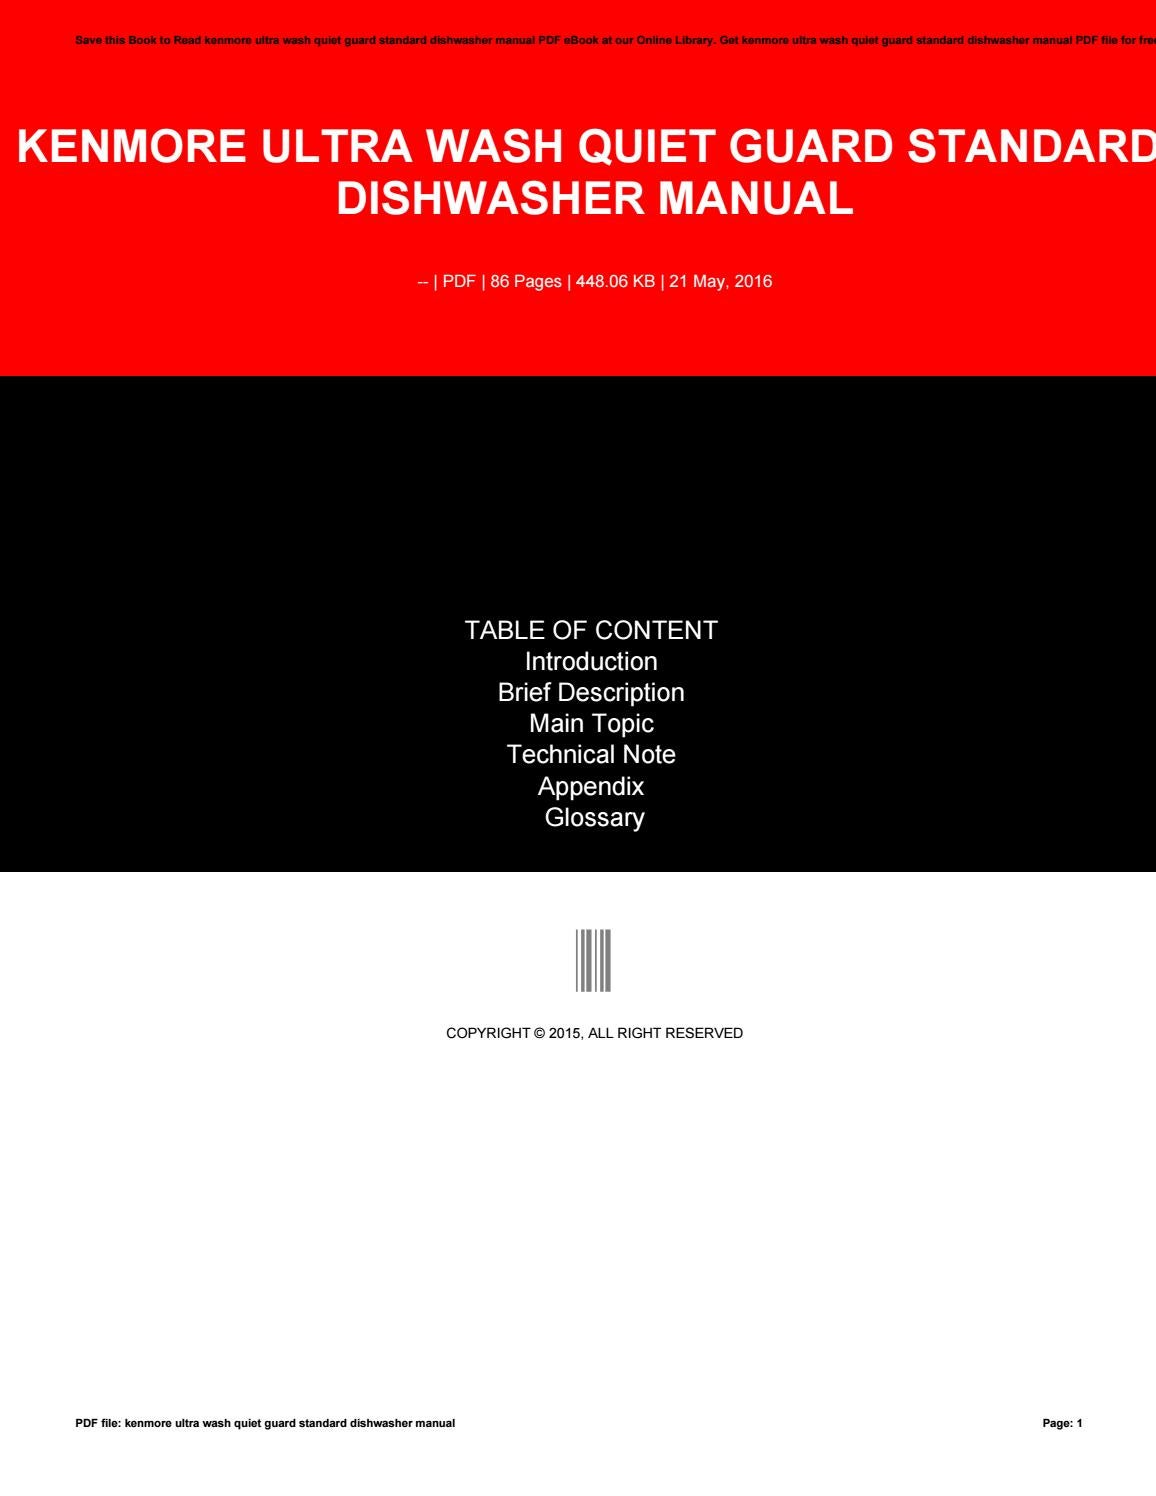 Kenmore ultra wash quiet guard standard dishwasher manual by c754 - issuu